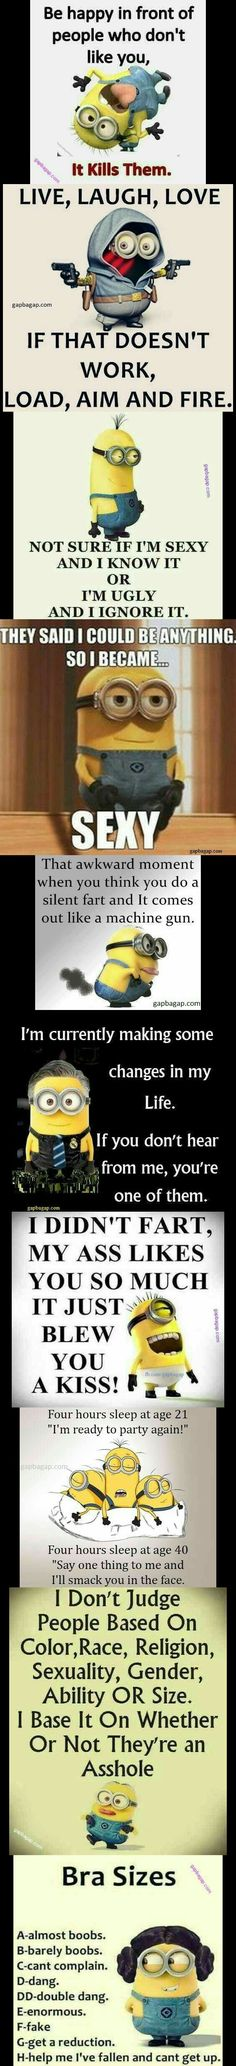 Top 10 #Funny #Minion #Jokes